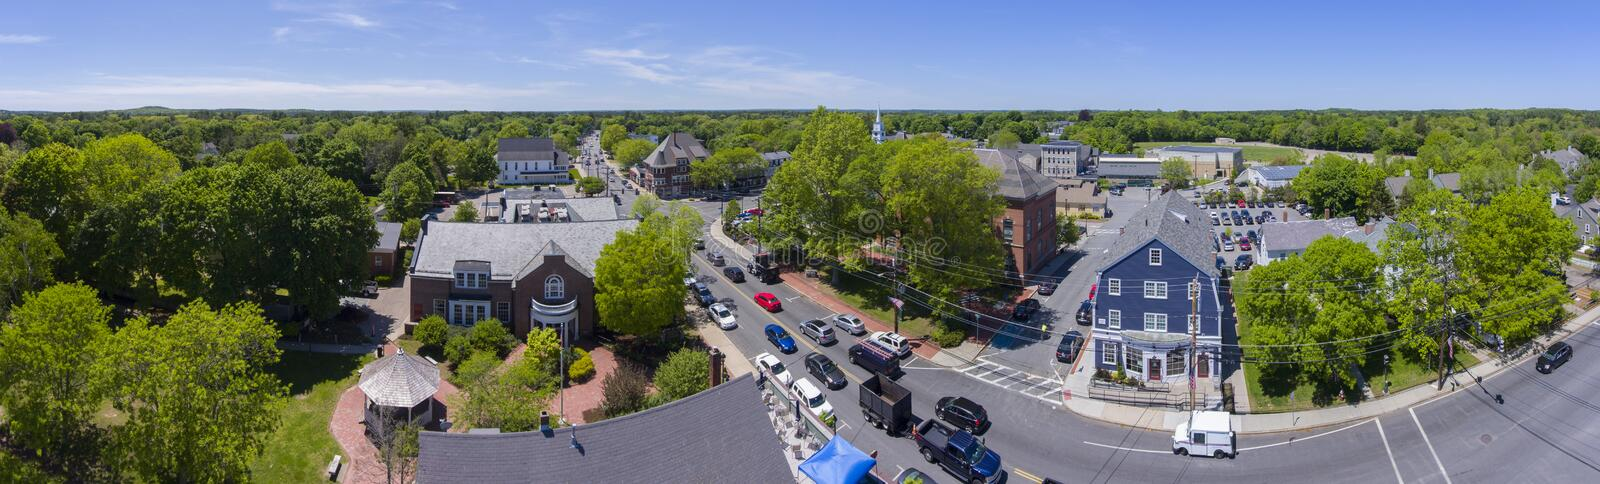 Medfield aerial view, Massachusetts, USA. Aerial view of Medfield historic town center and Maine Street panorama in summer, Medfield, Boston Metro West area royalty free stock photo